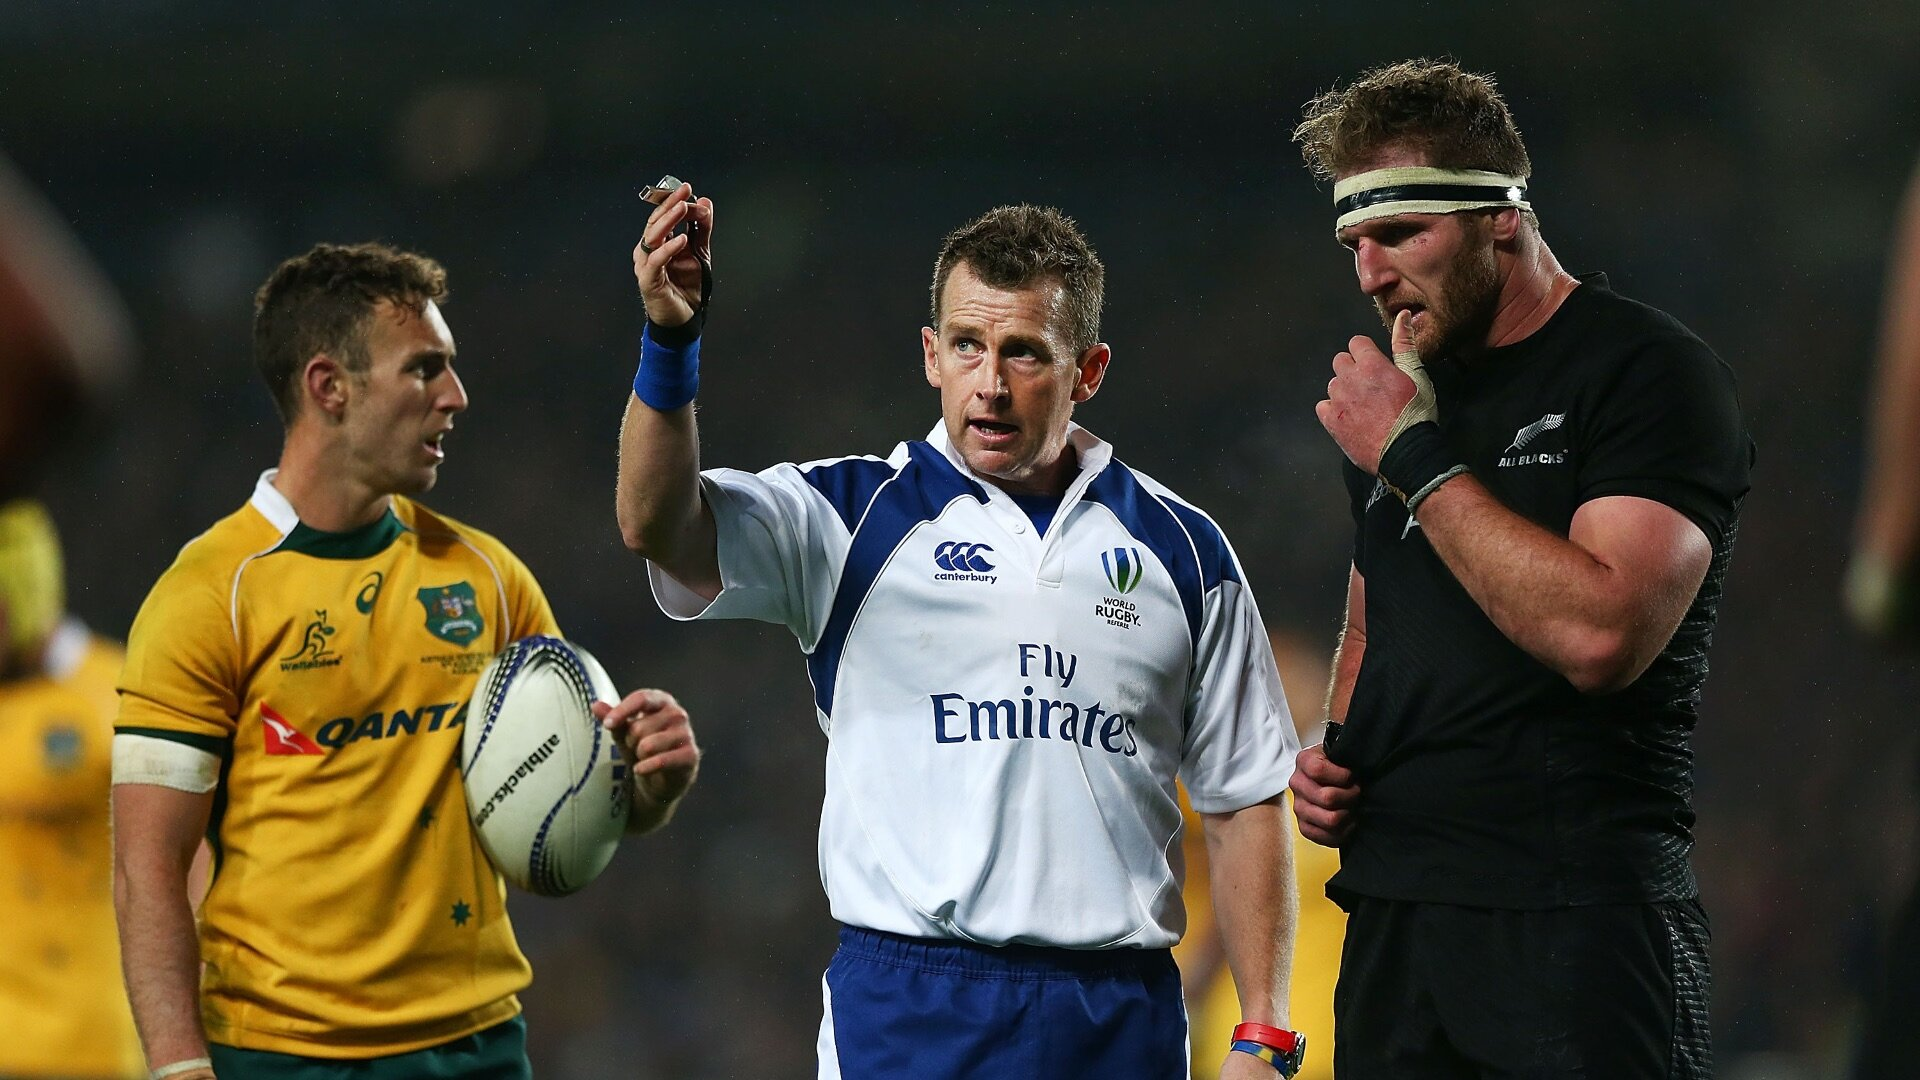 Non-neutral referees for Bledisloe Cup; Nigel Owens and Joy Neville make Test history